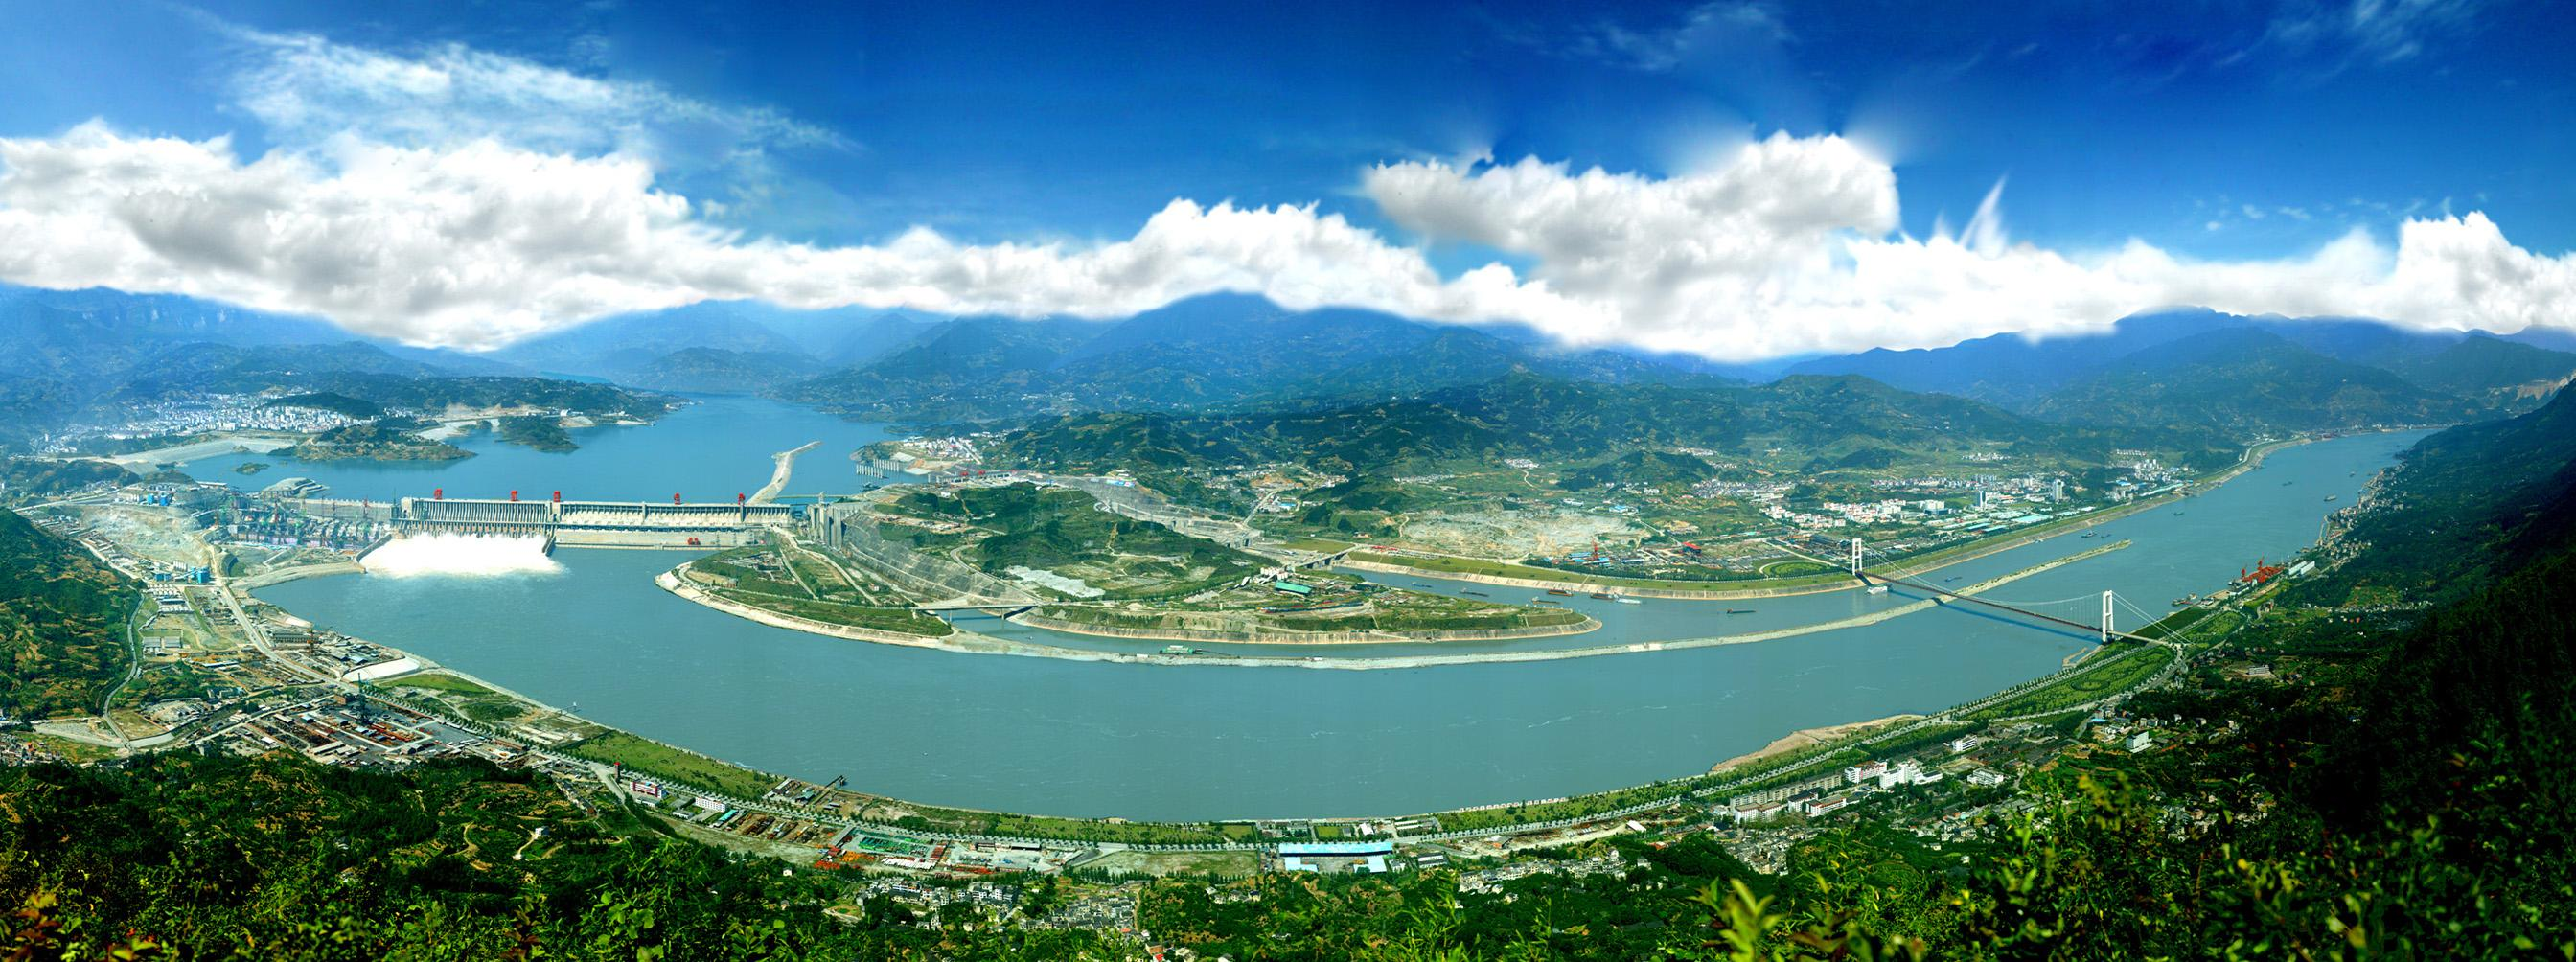 Three gorges dam project china s biggest project since the great wall - Yangtze River China_wide_view Published January 4 2013 At 2688 1004 In Three Gorges Dam Project China S Biggest Project Since The Great Wall